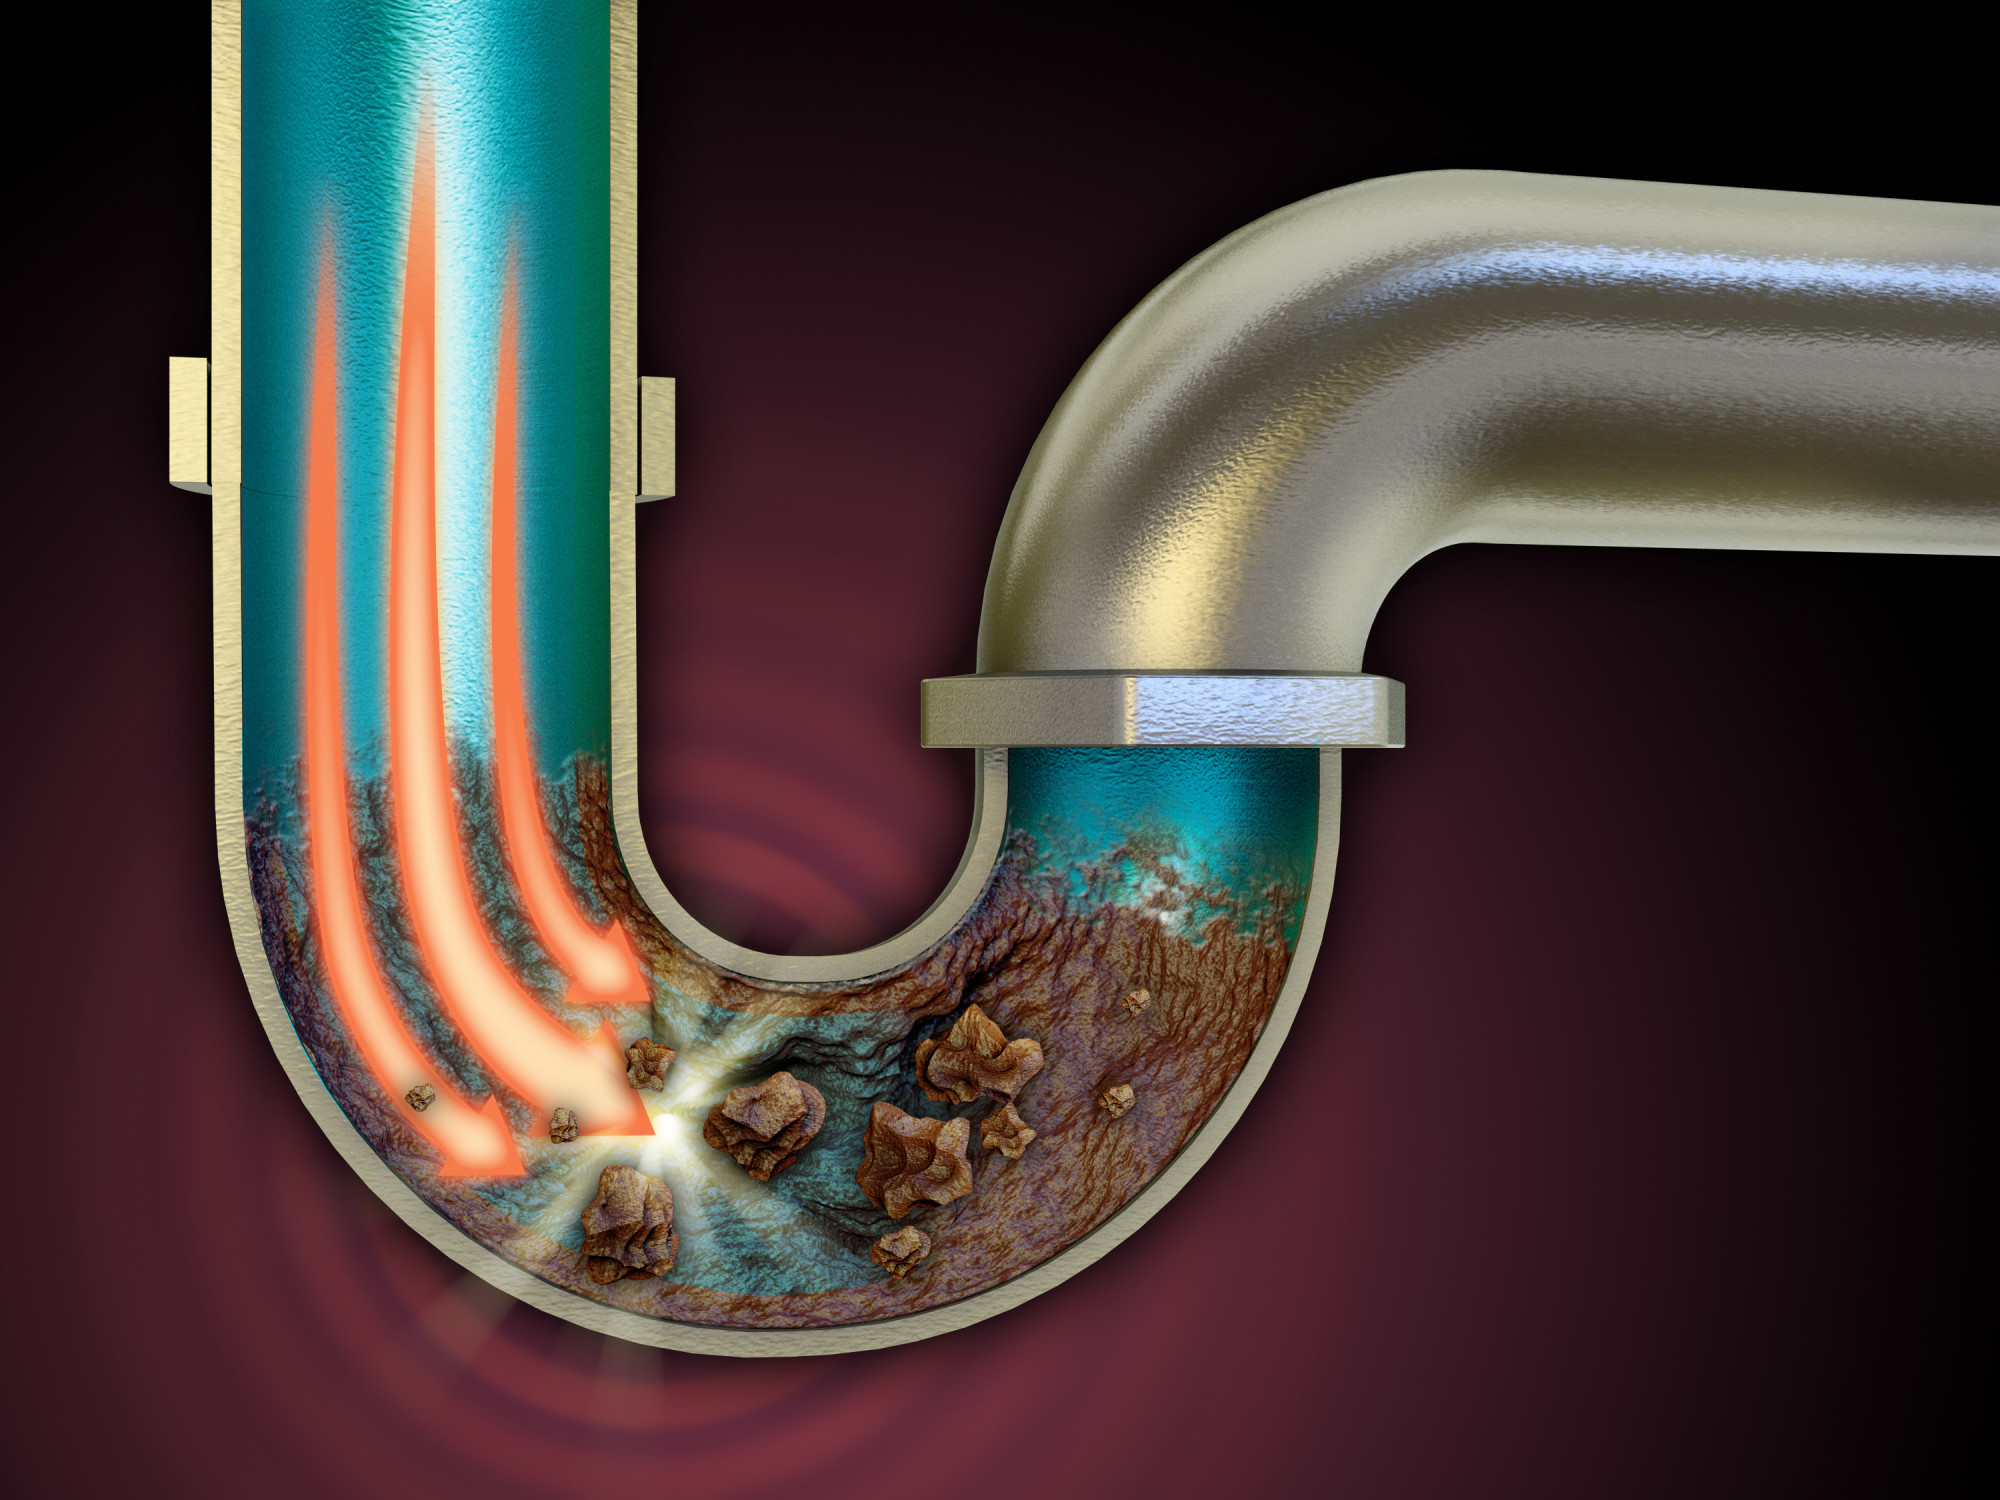 4 Top Tips for Finding a Drain Cleaning Service Near Me